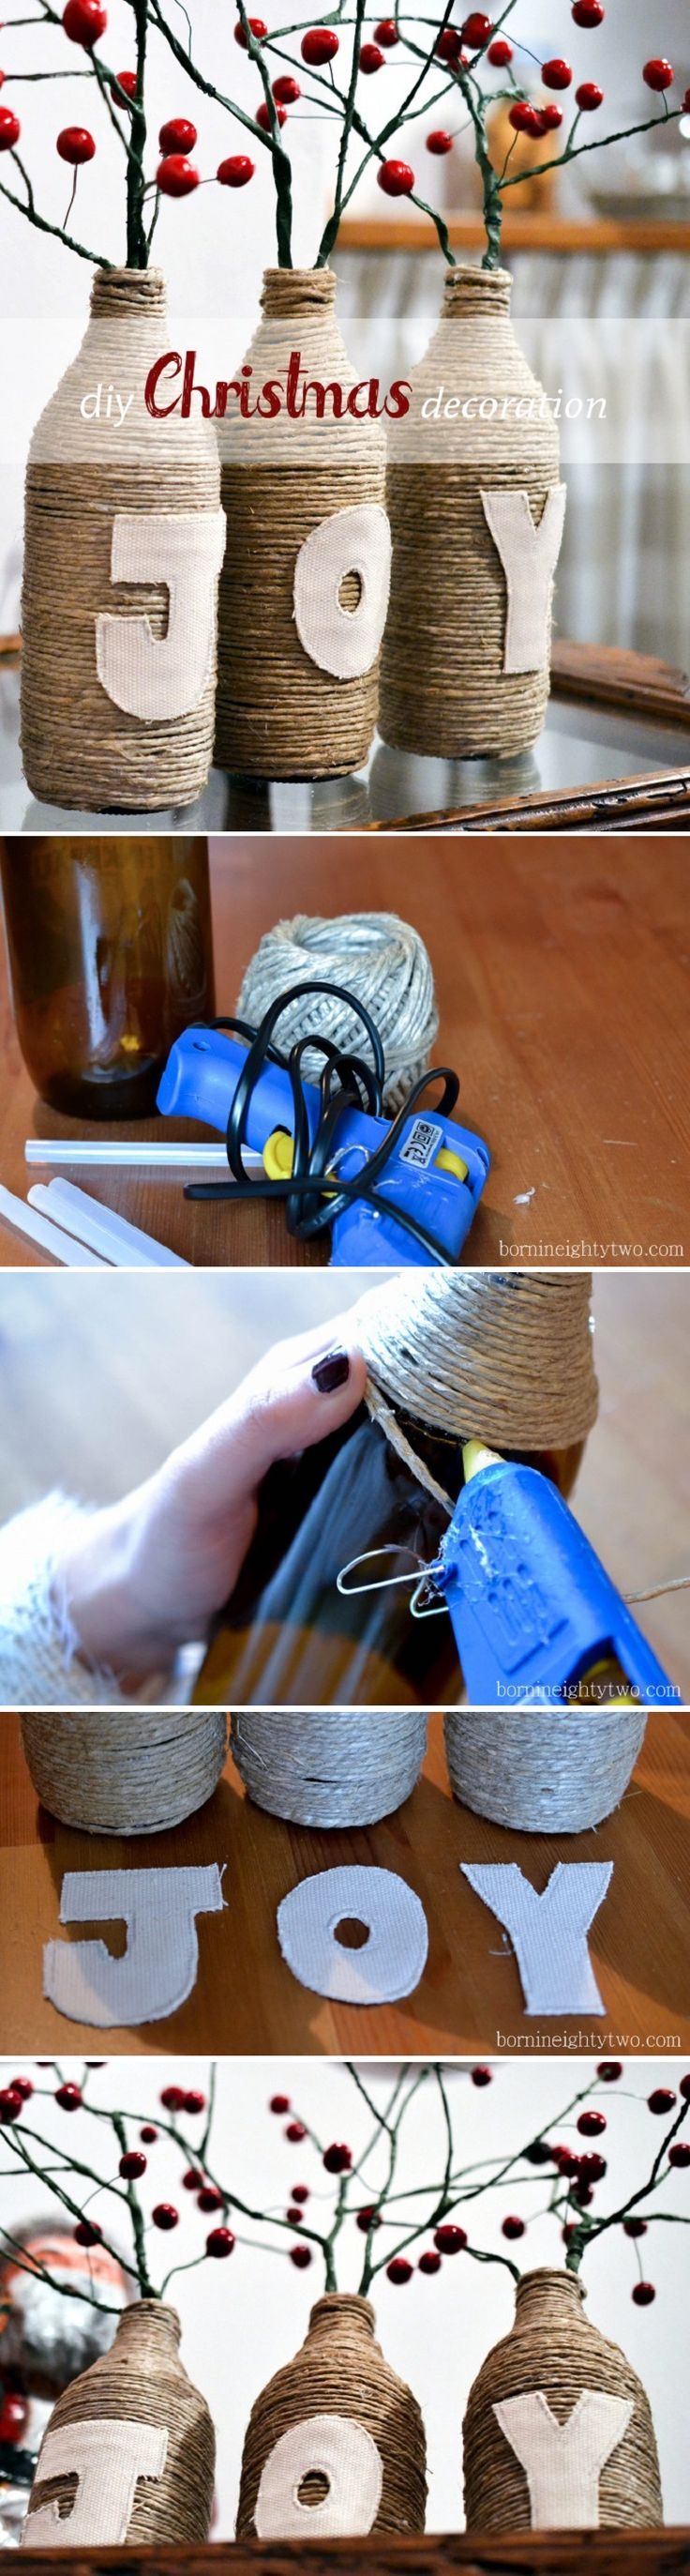 Diy Christmas Decoration {JOY} - 15 Best DIY Ideas to Winterize Your Home for Christmas | GleamItUp